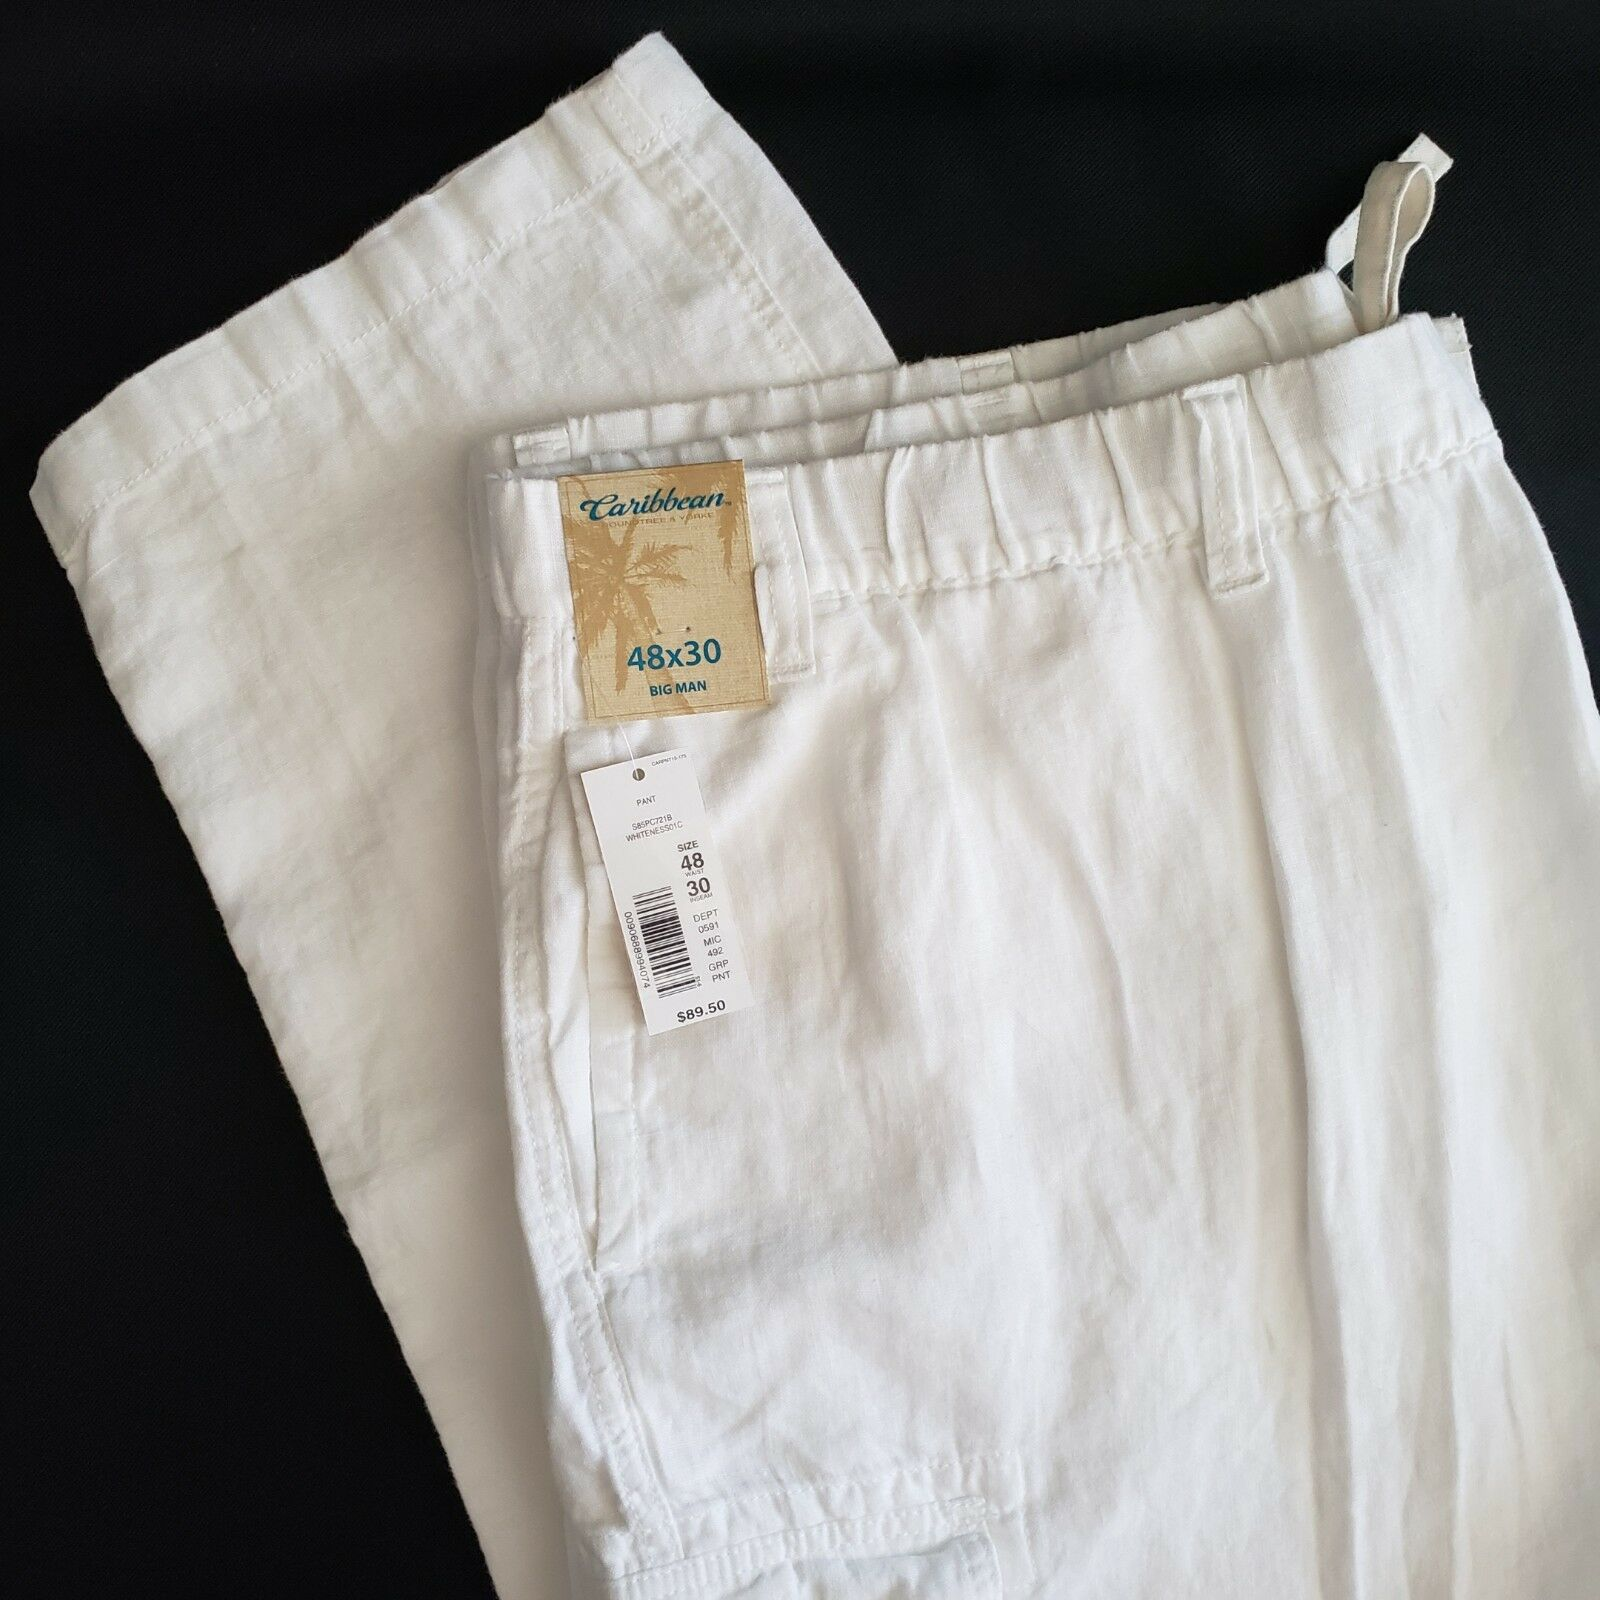 Caribbean White Linen Cargo Pants Tag 48 x 30 Actual 45 x 29 Roundtree Yorke New